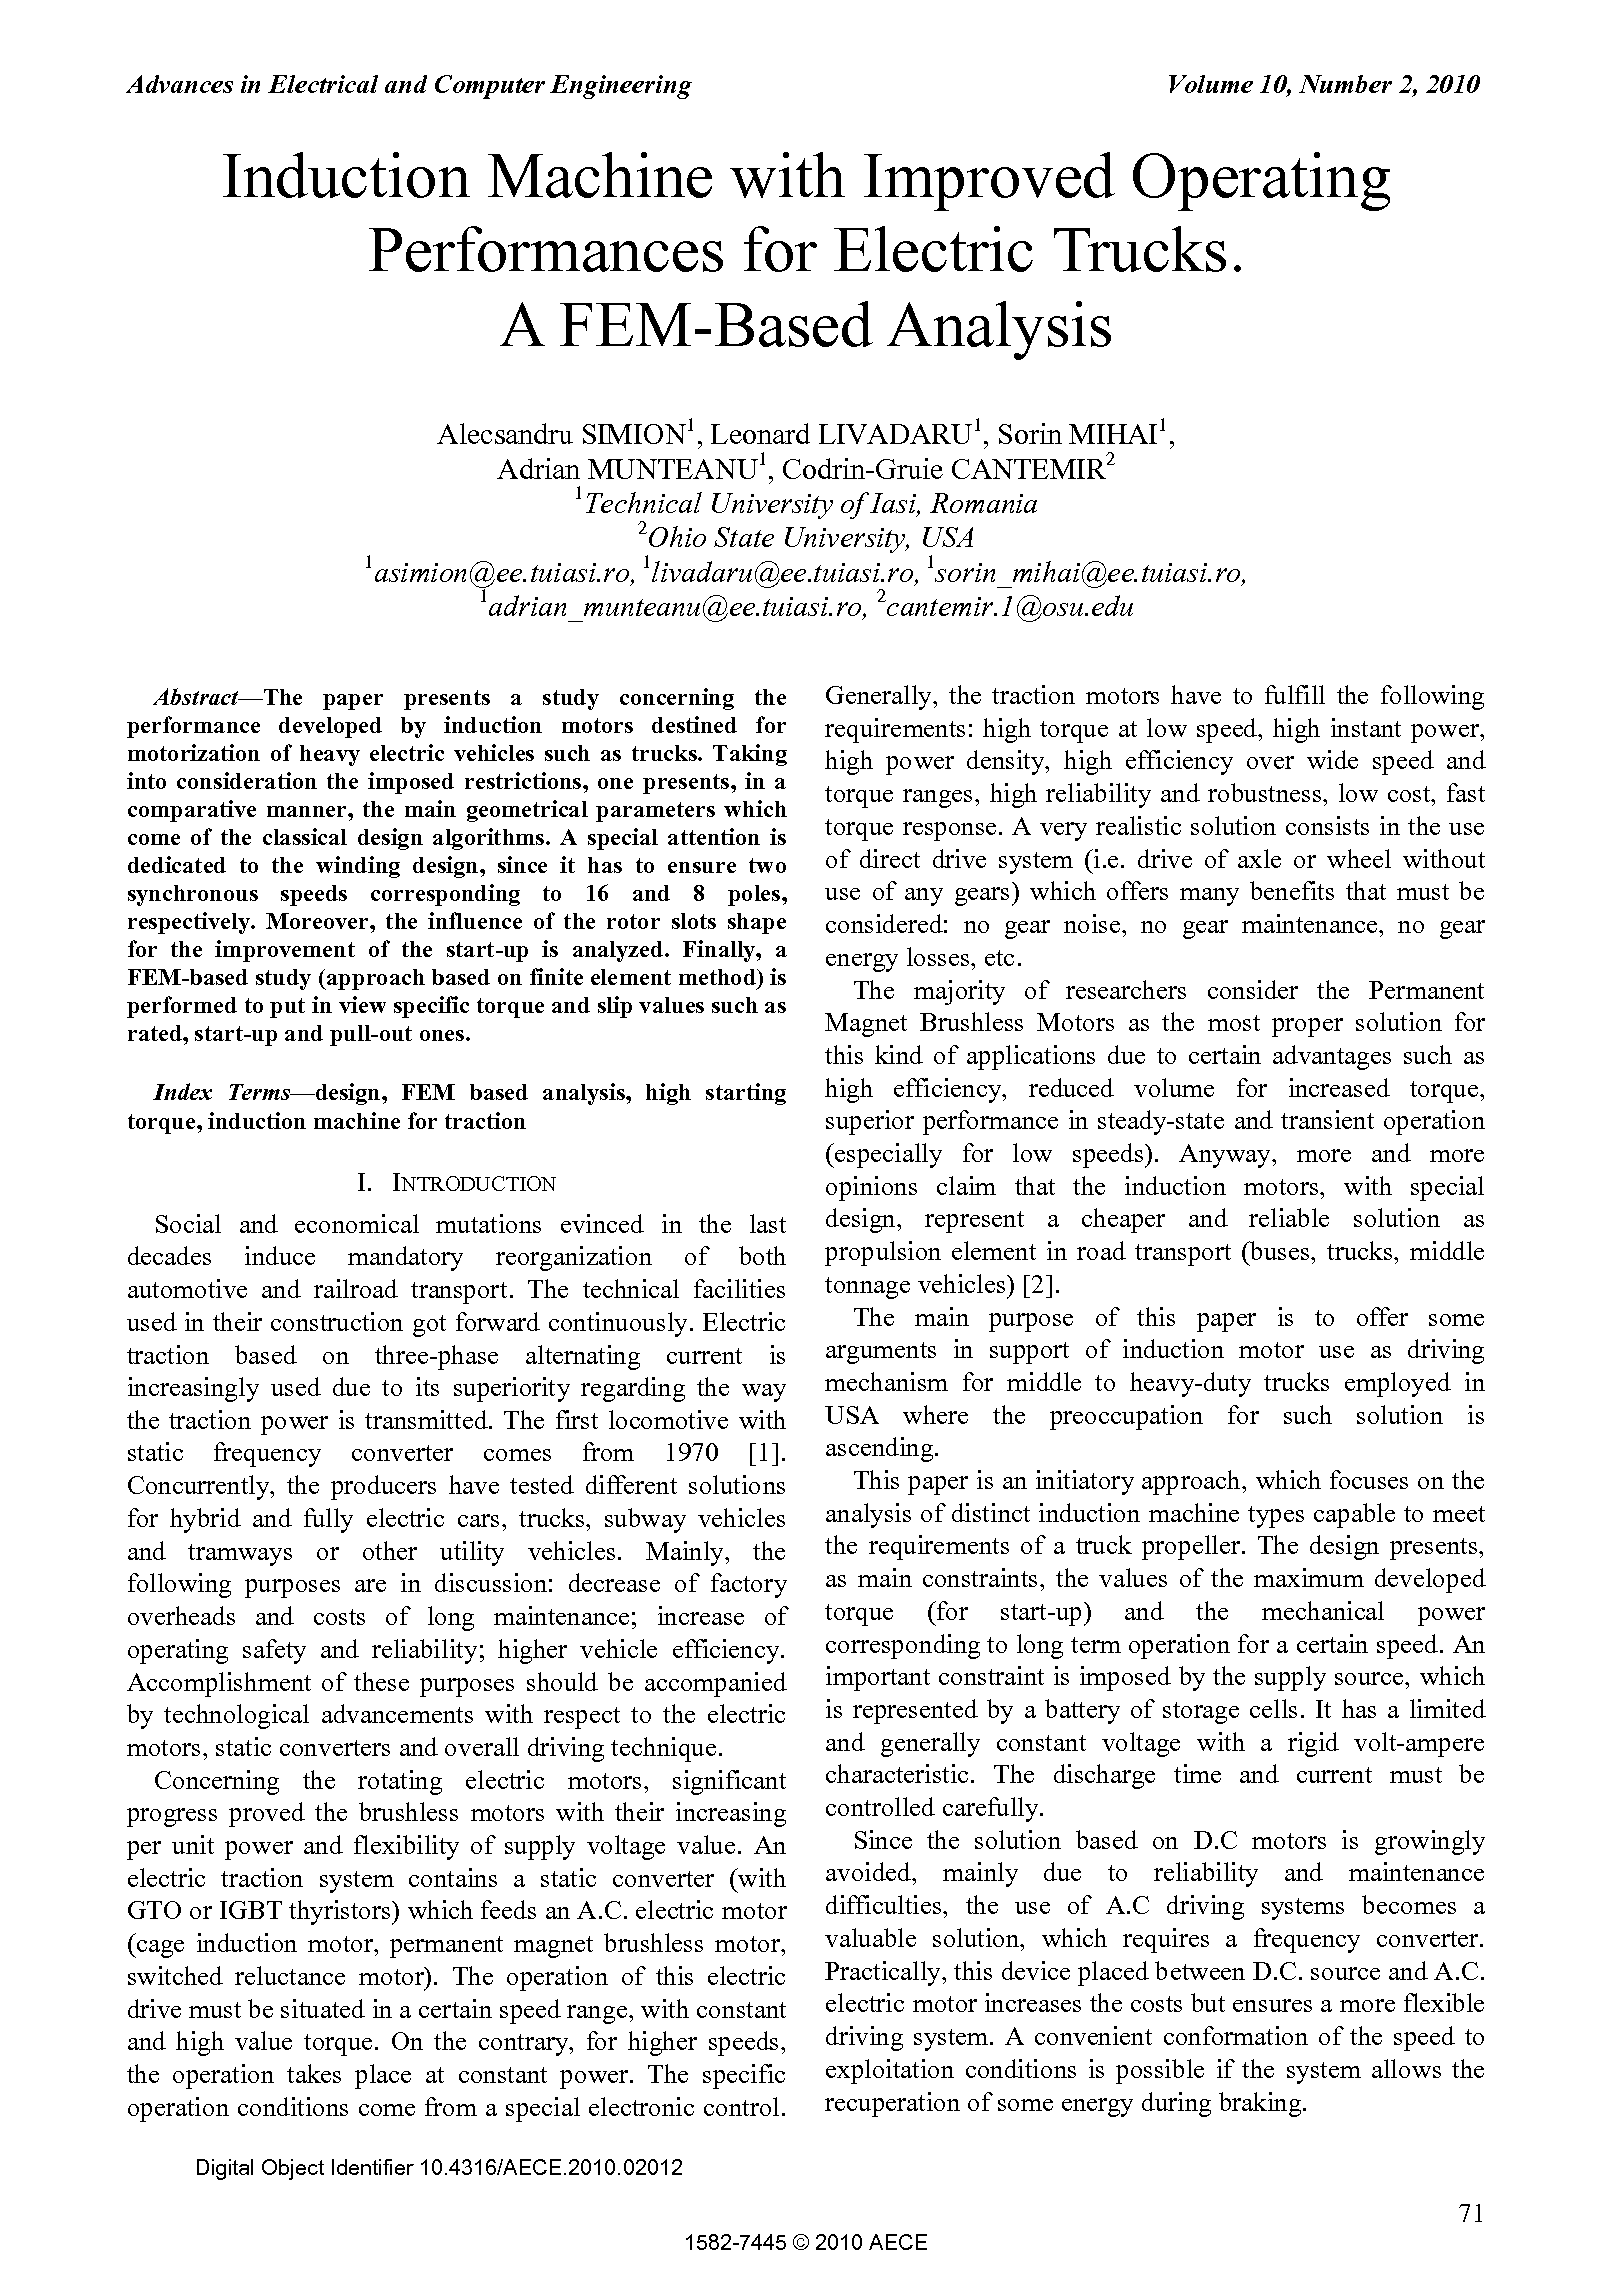 PDF Quickview for paper with DOI:10.4316/AECE.2010.02012